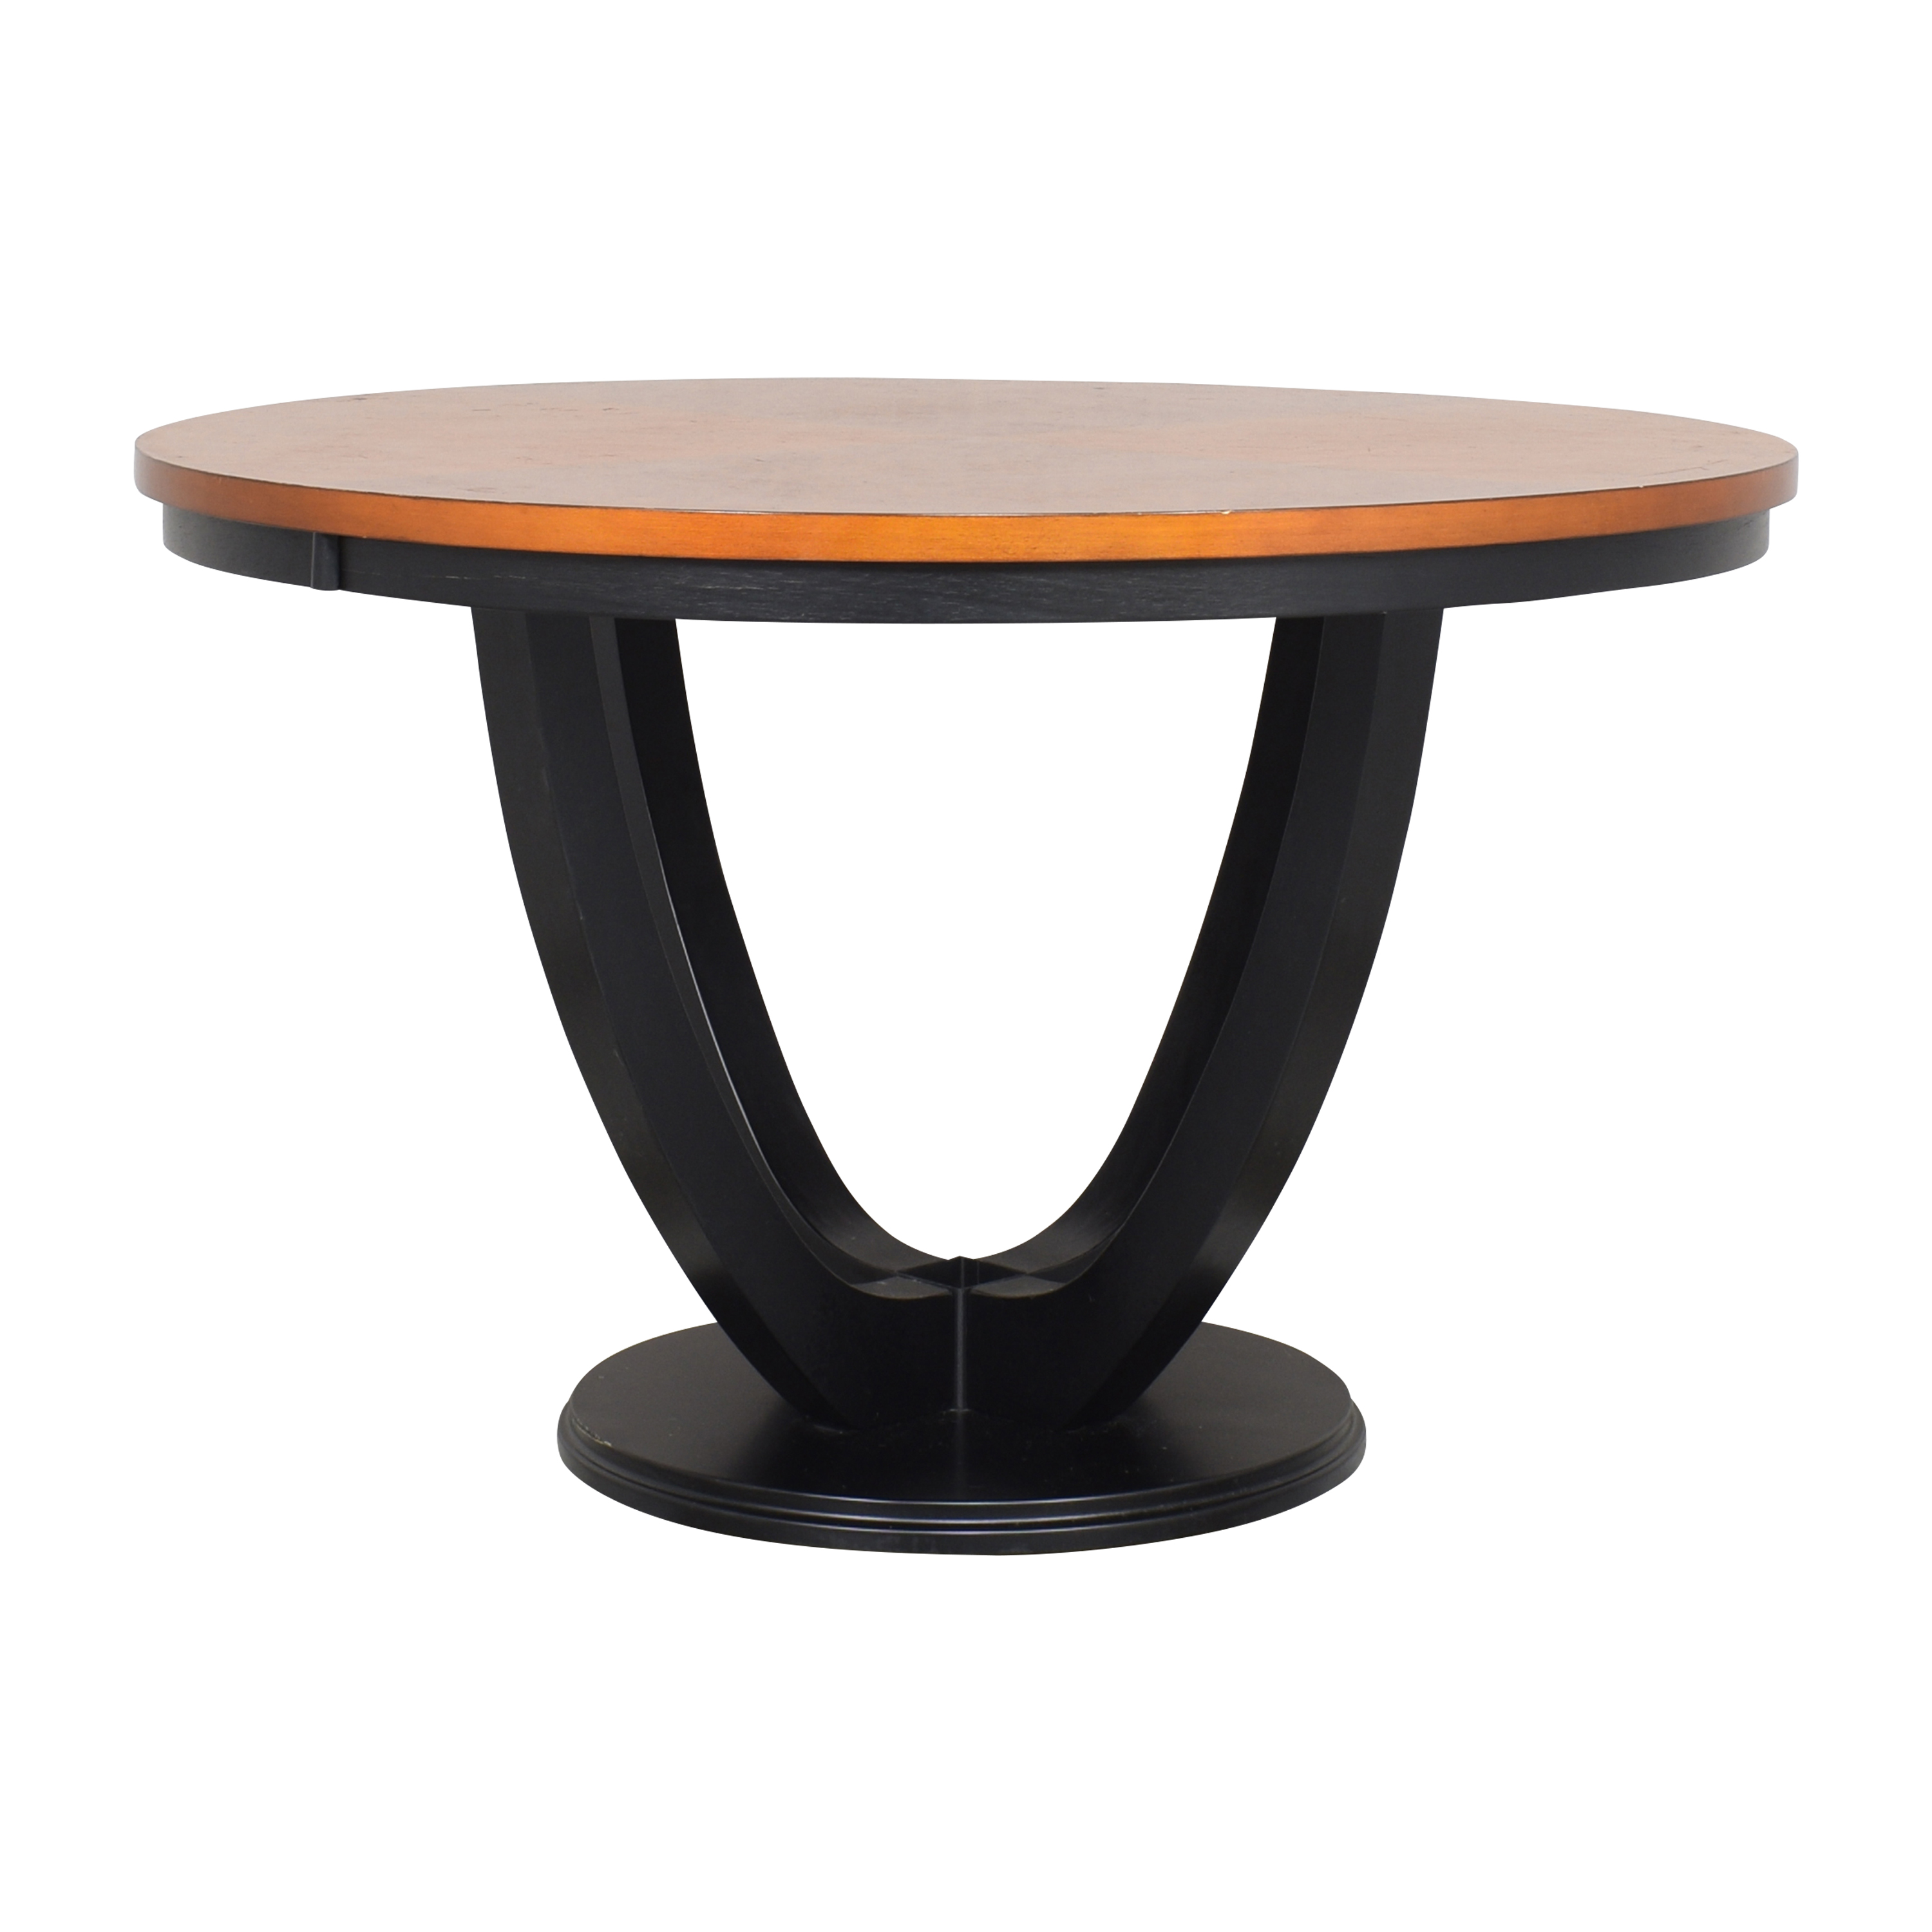 Coaster Fine Furniture Coaster Fine Furniture Round Dining Table on sale